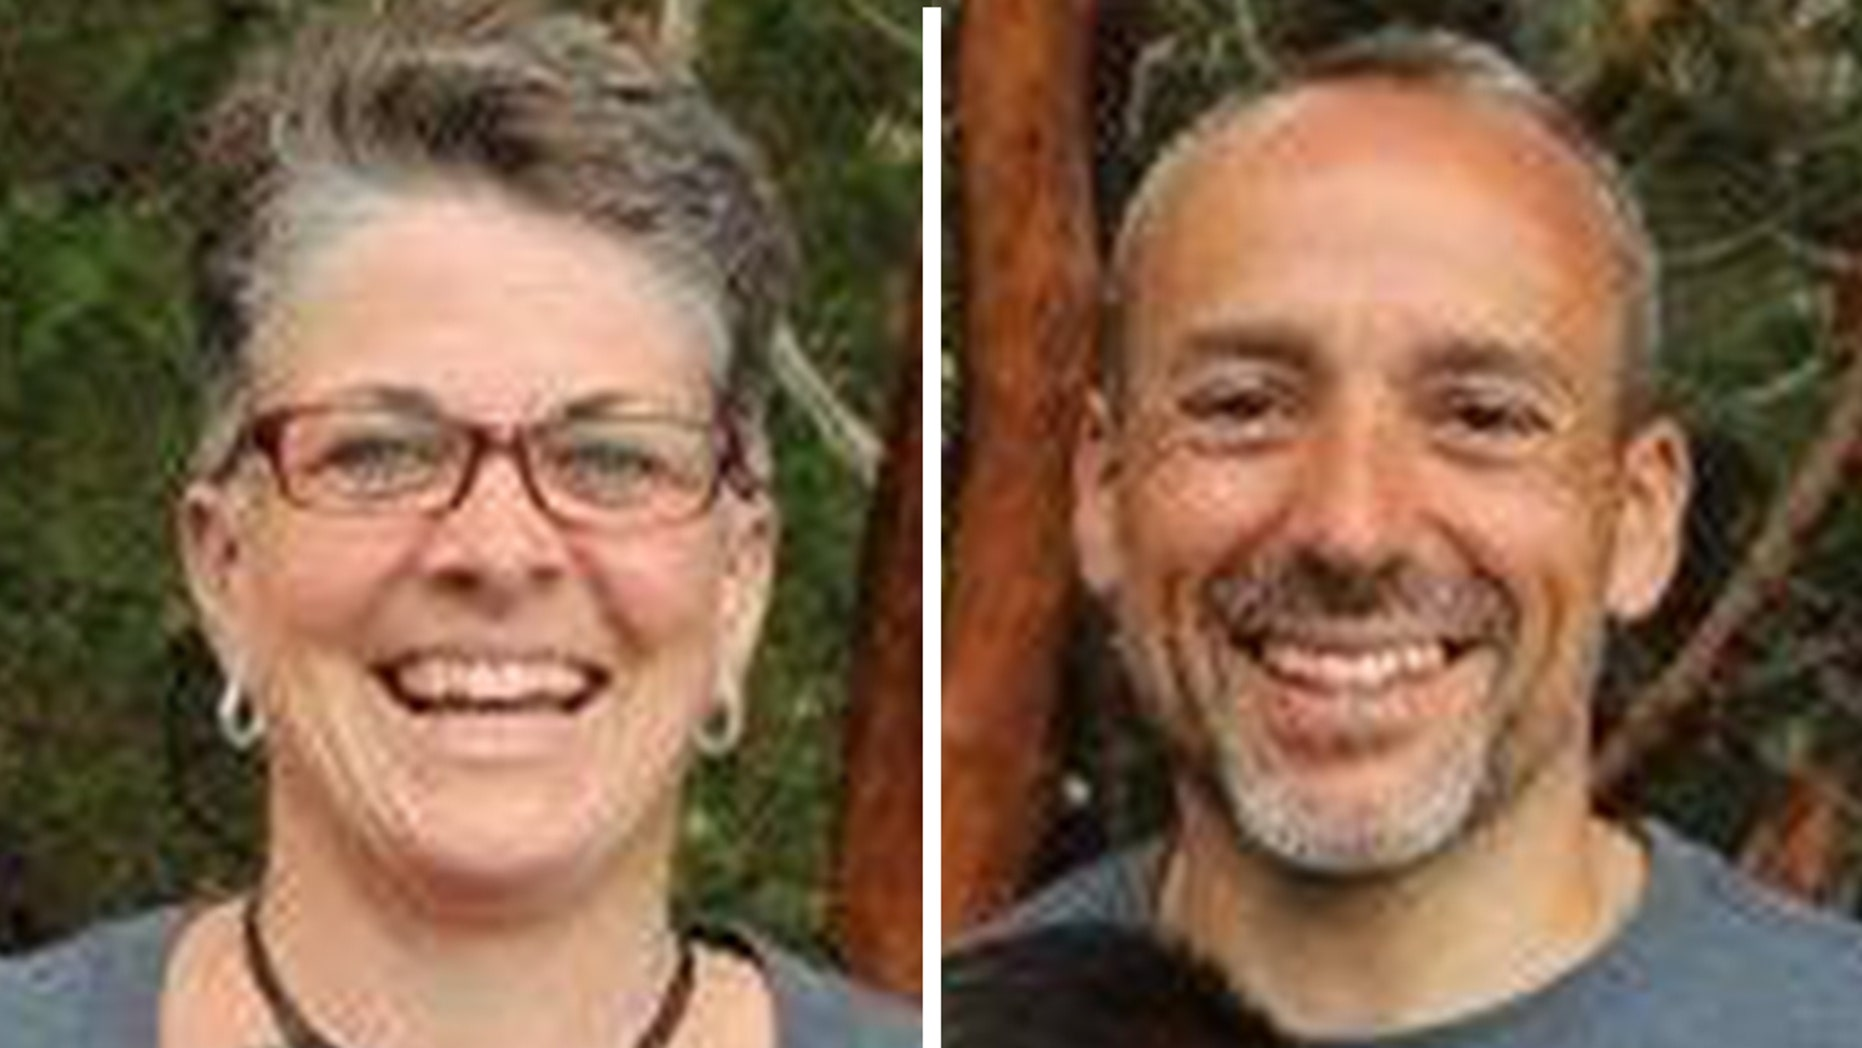 Lizette Eckert, 50, and James Eckert, 48, were pronounced dead after police found them shot in a New Hampshire home.